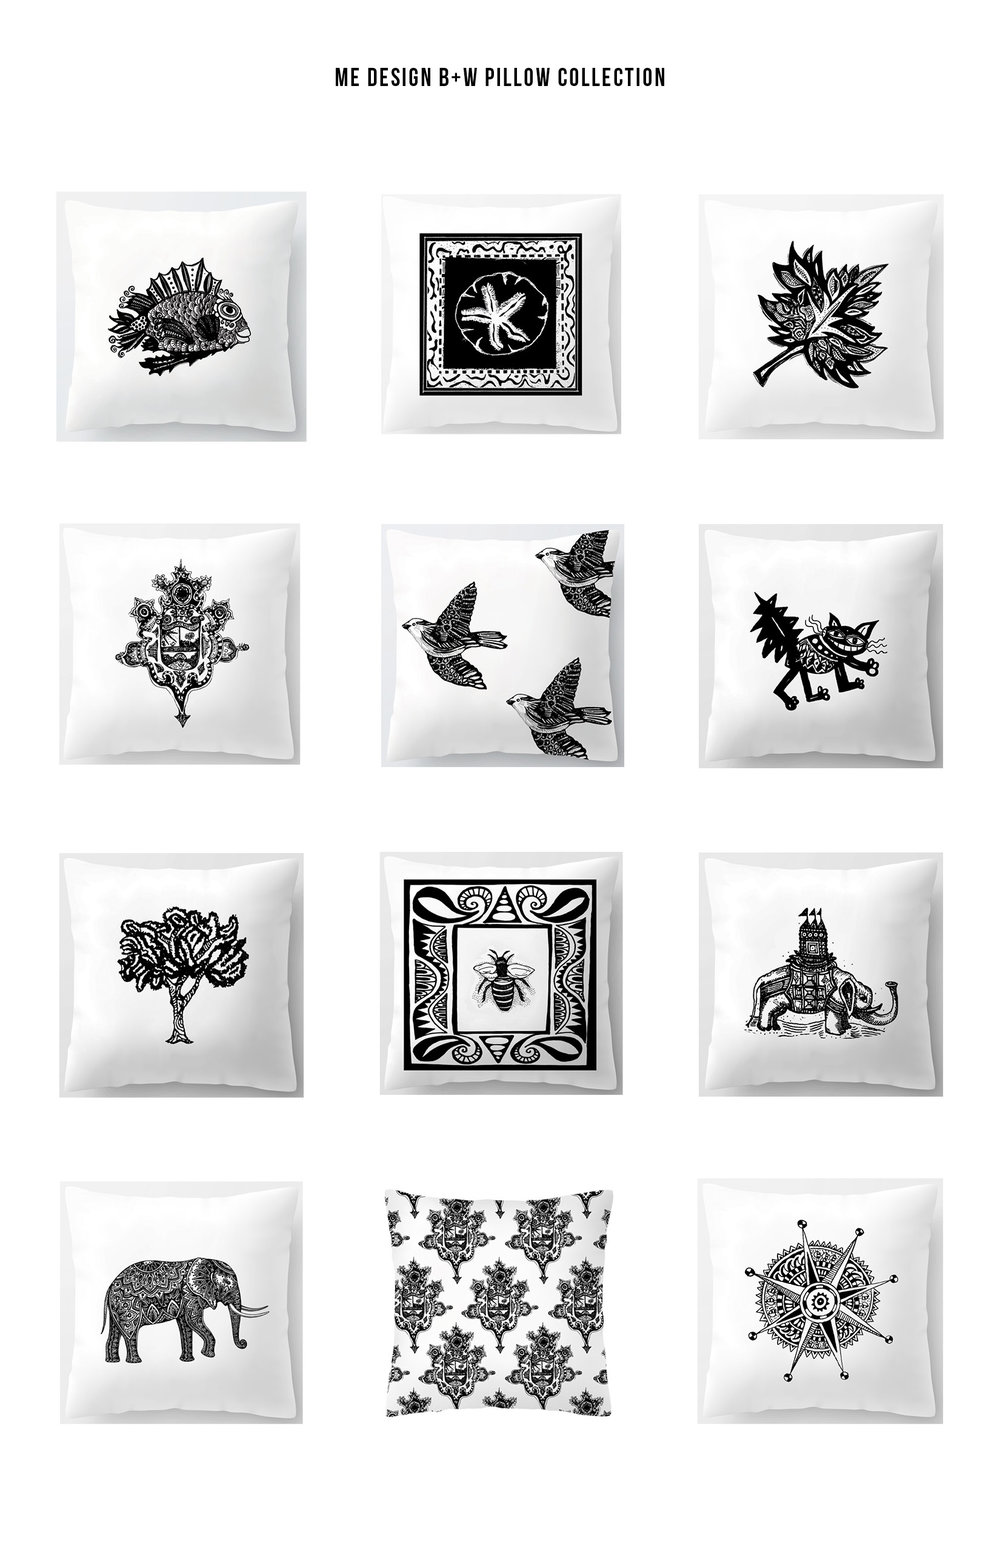 ME Design pillow collection v2 - website.jpg